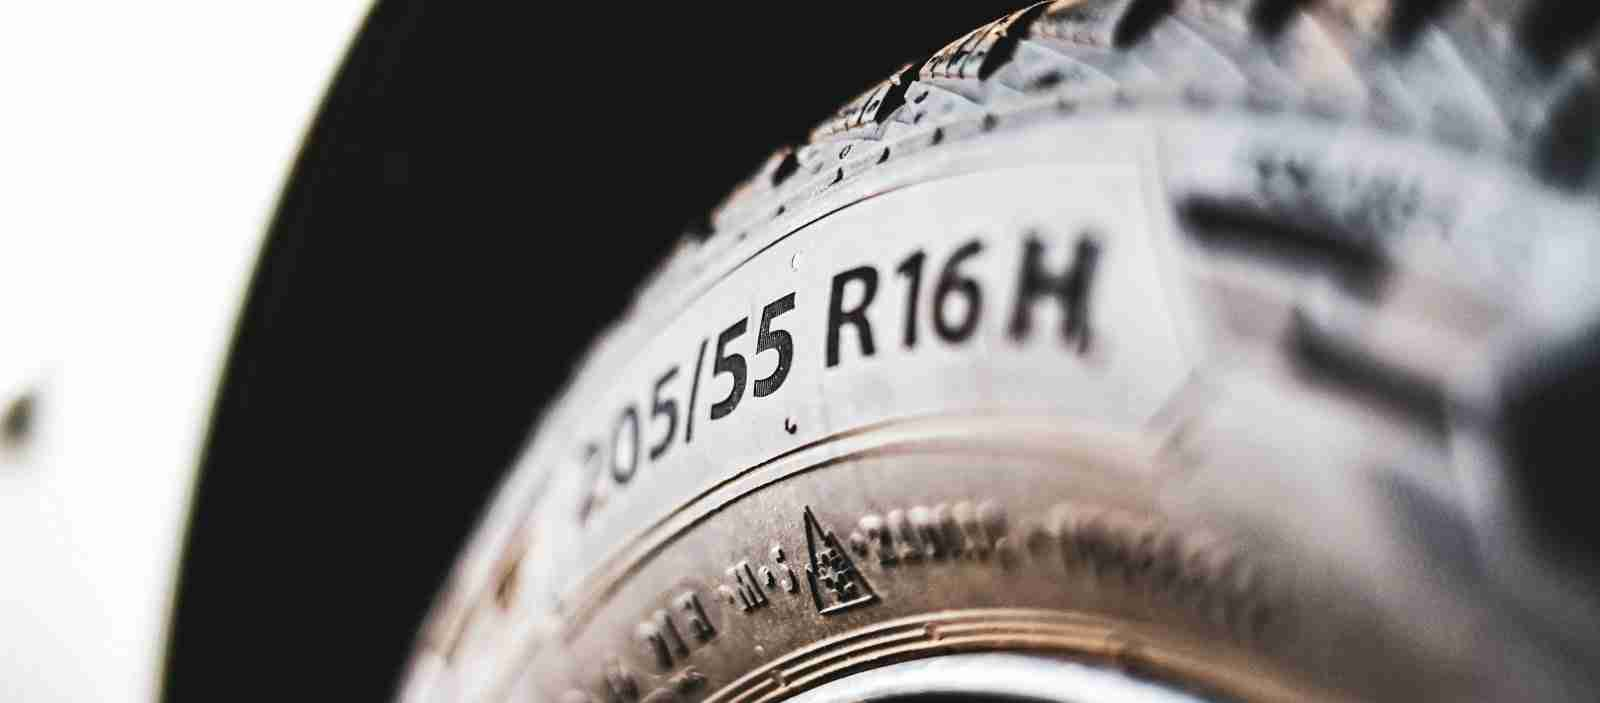 We Offer Precision Four Wheel Alignments And Road Force Tire Balancing